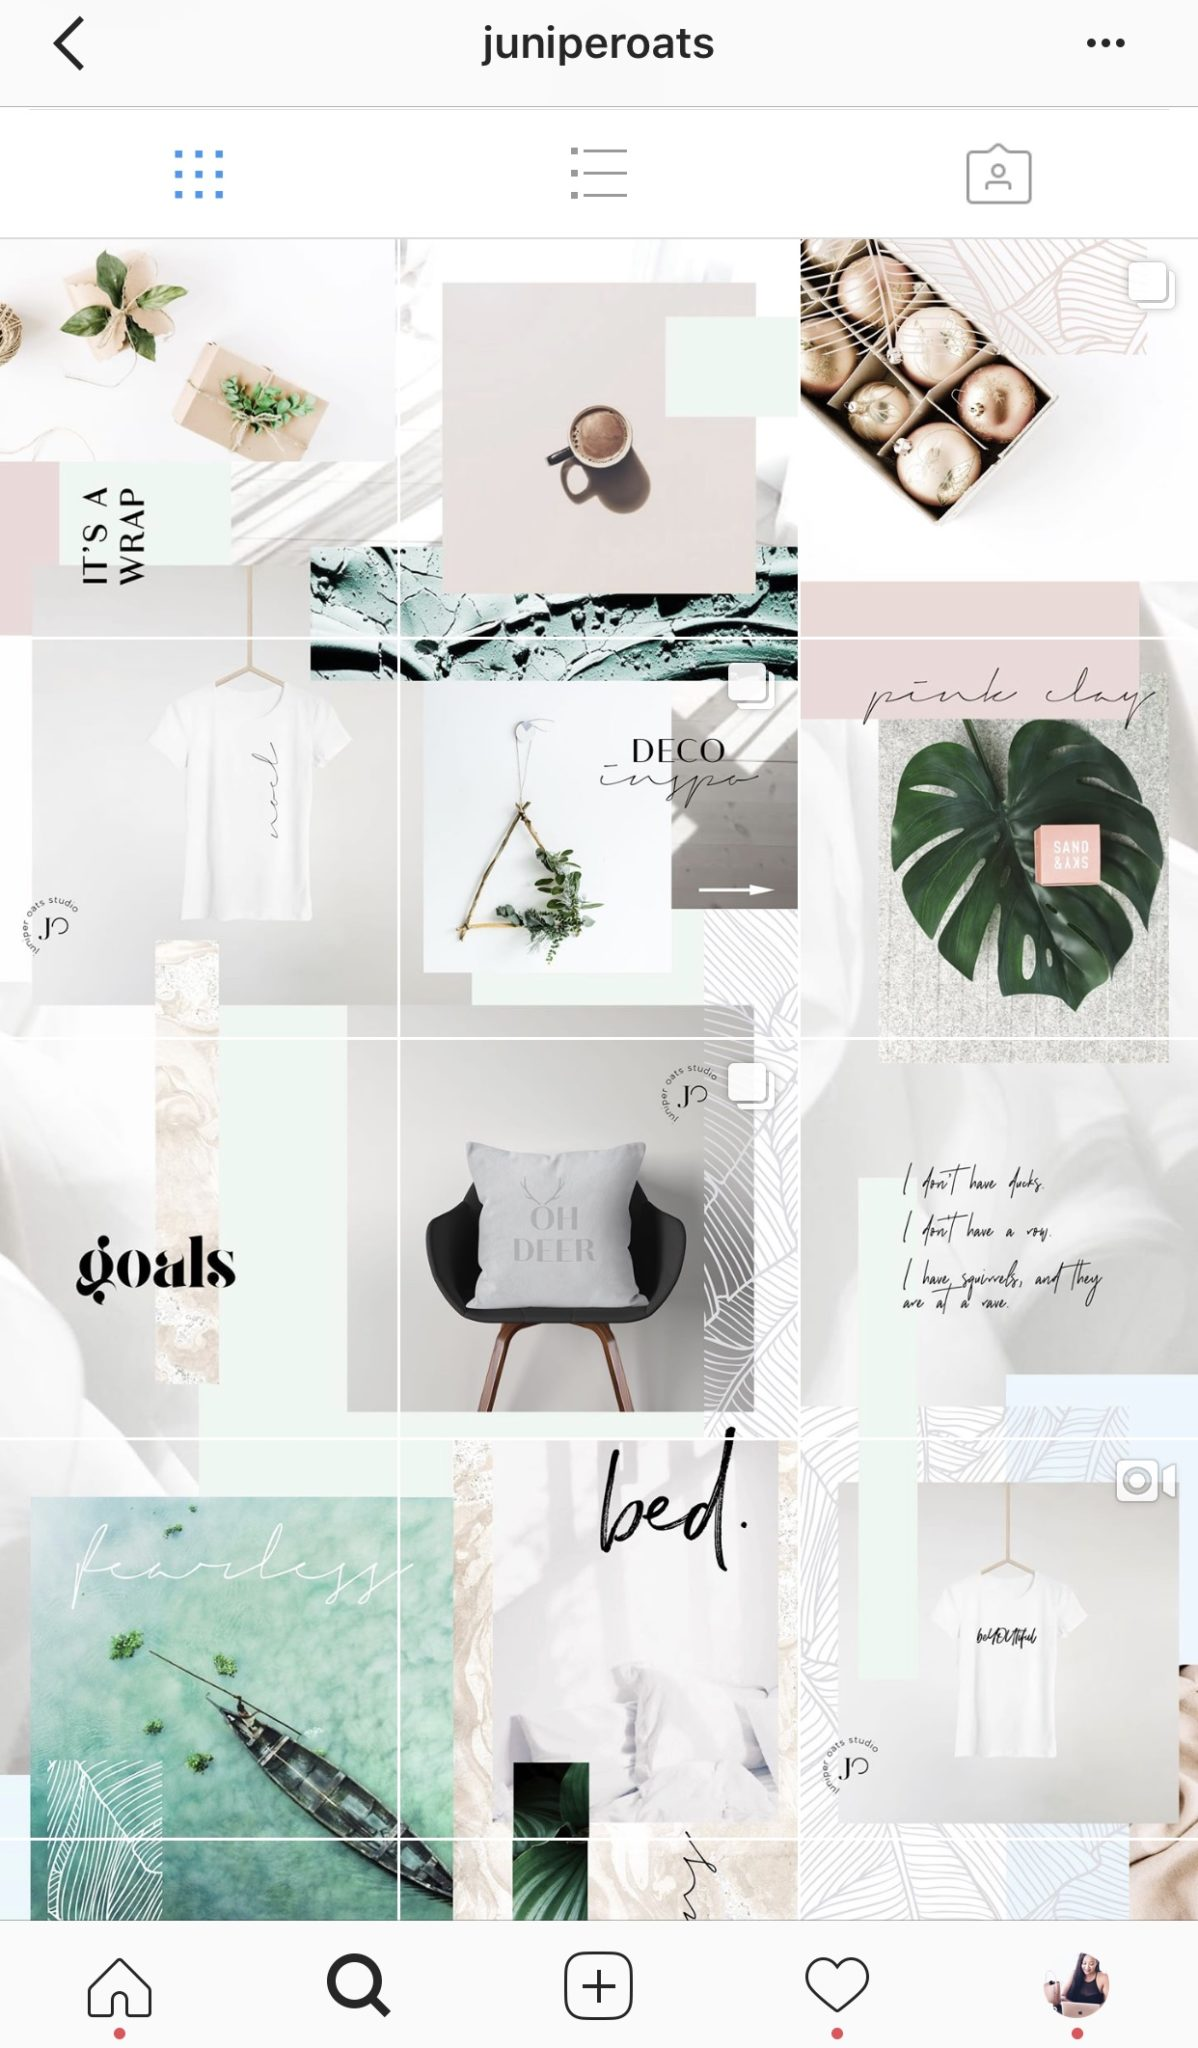 5 tips for creating a cohesive instagram feed mnd marketing. Black Bedroom Furniture Sets. Home Design Ideas